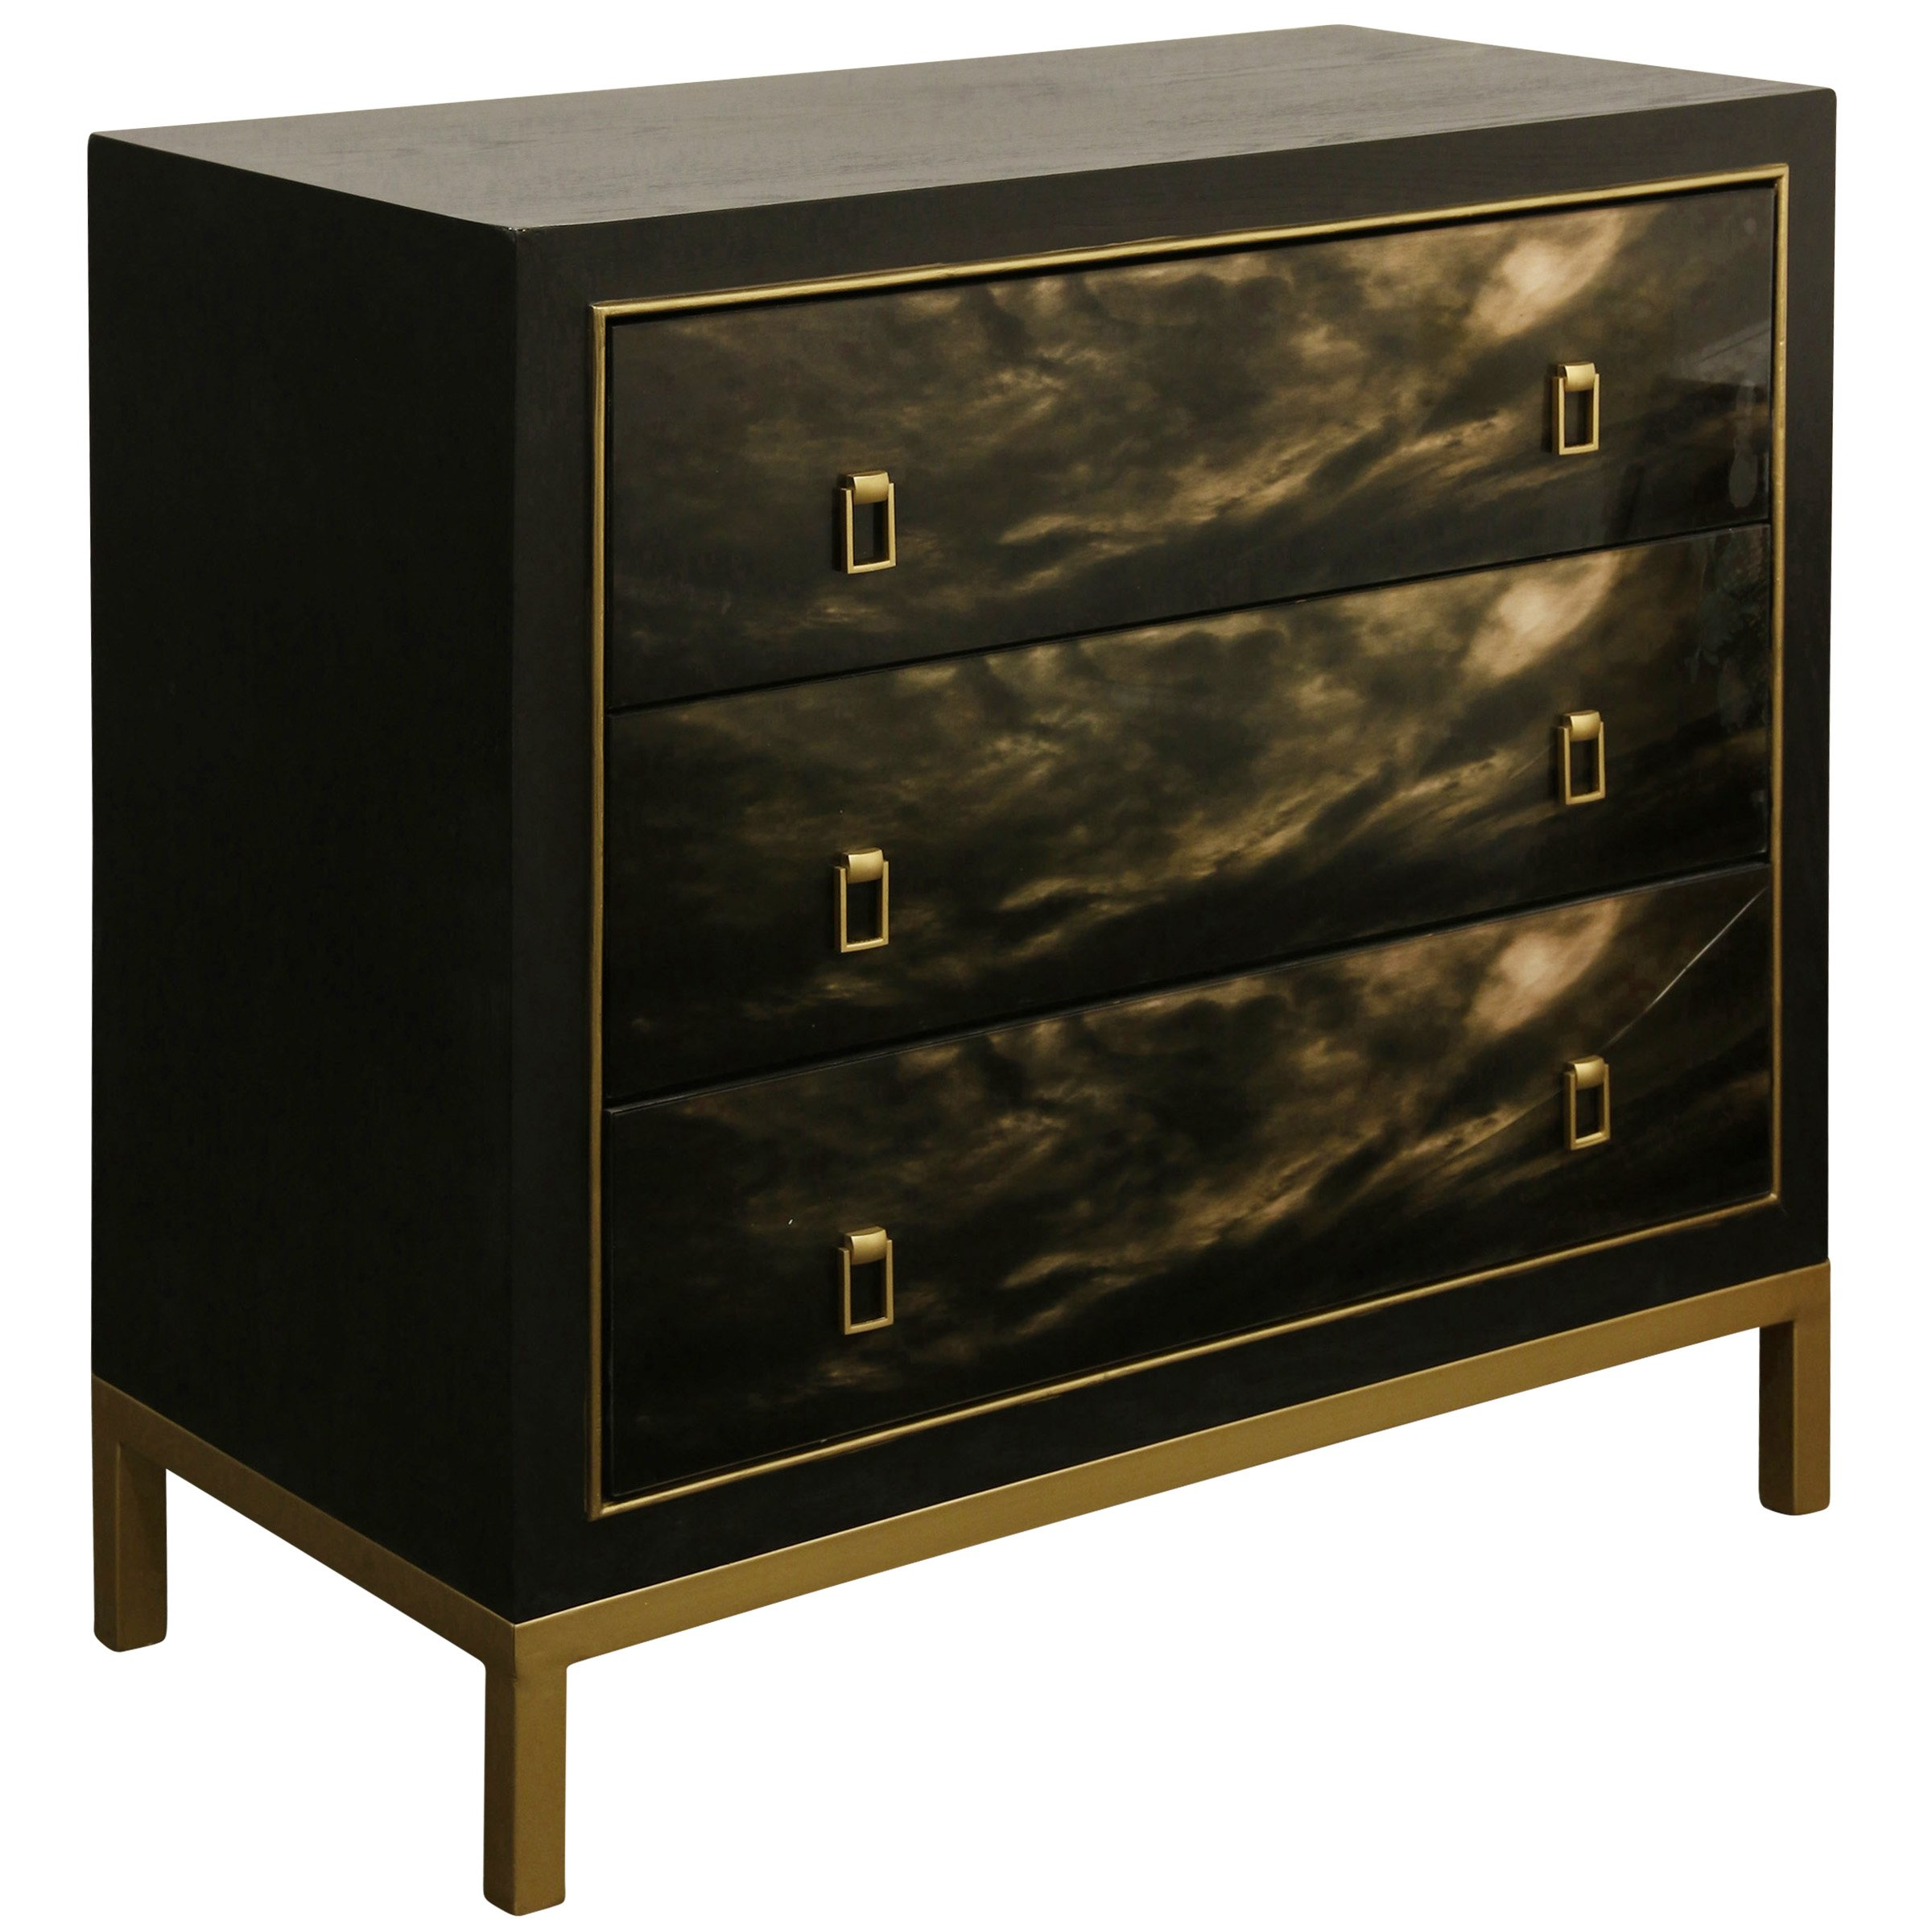 GwG Outlet 3-Drawer Chest in Satin Black Enamel Exterior Finish